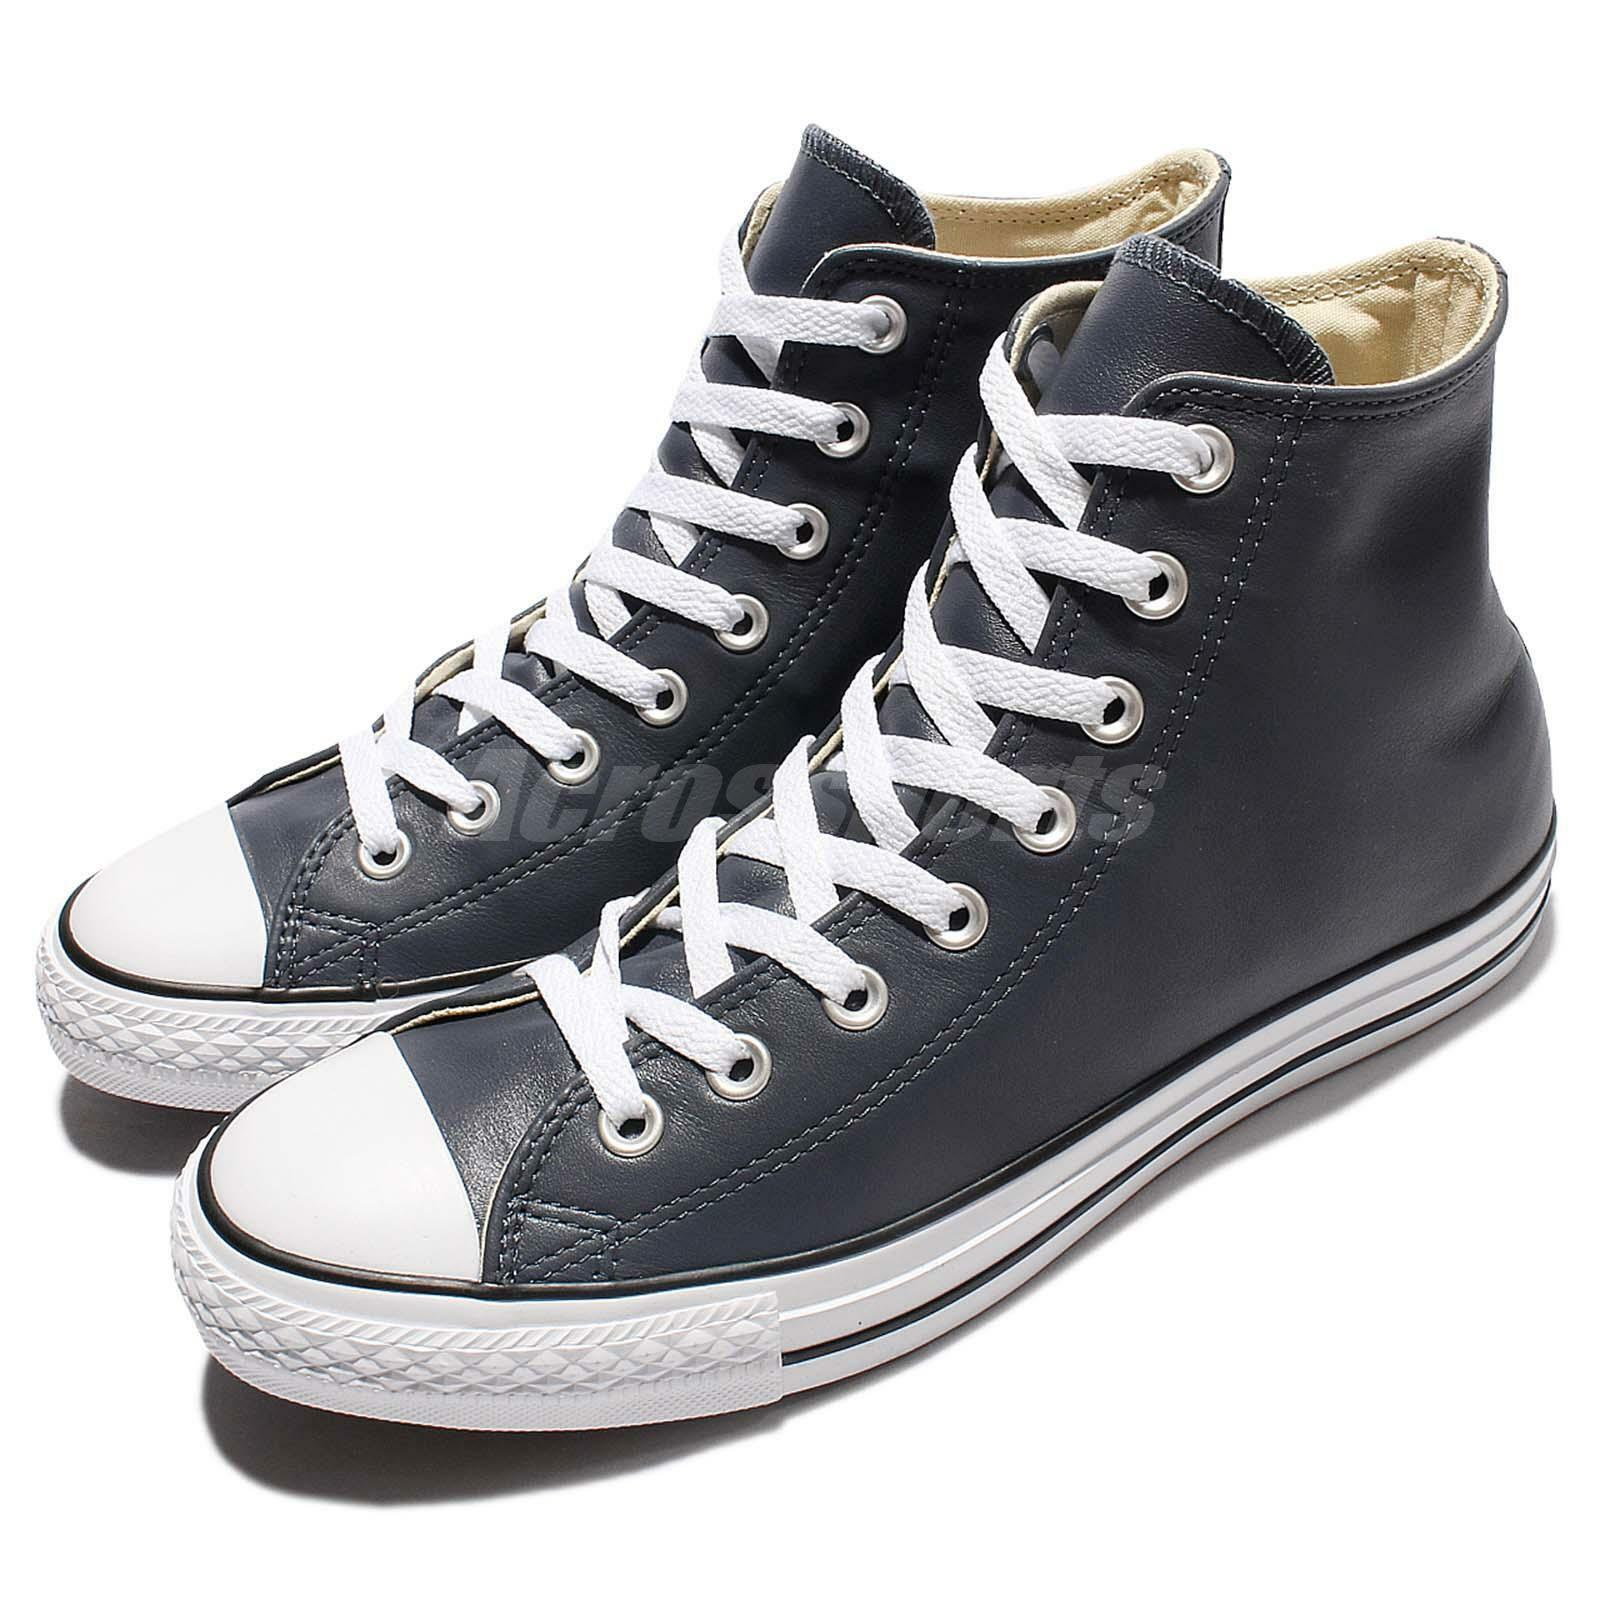 Converse Chuck Taylor All Star Navy White Men Shoes Sneakers 156388C